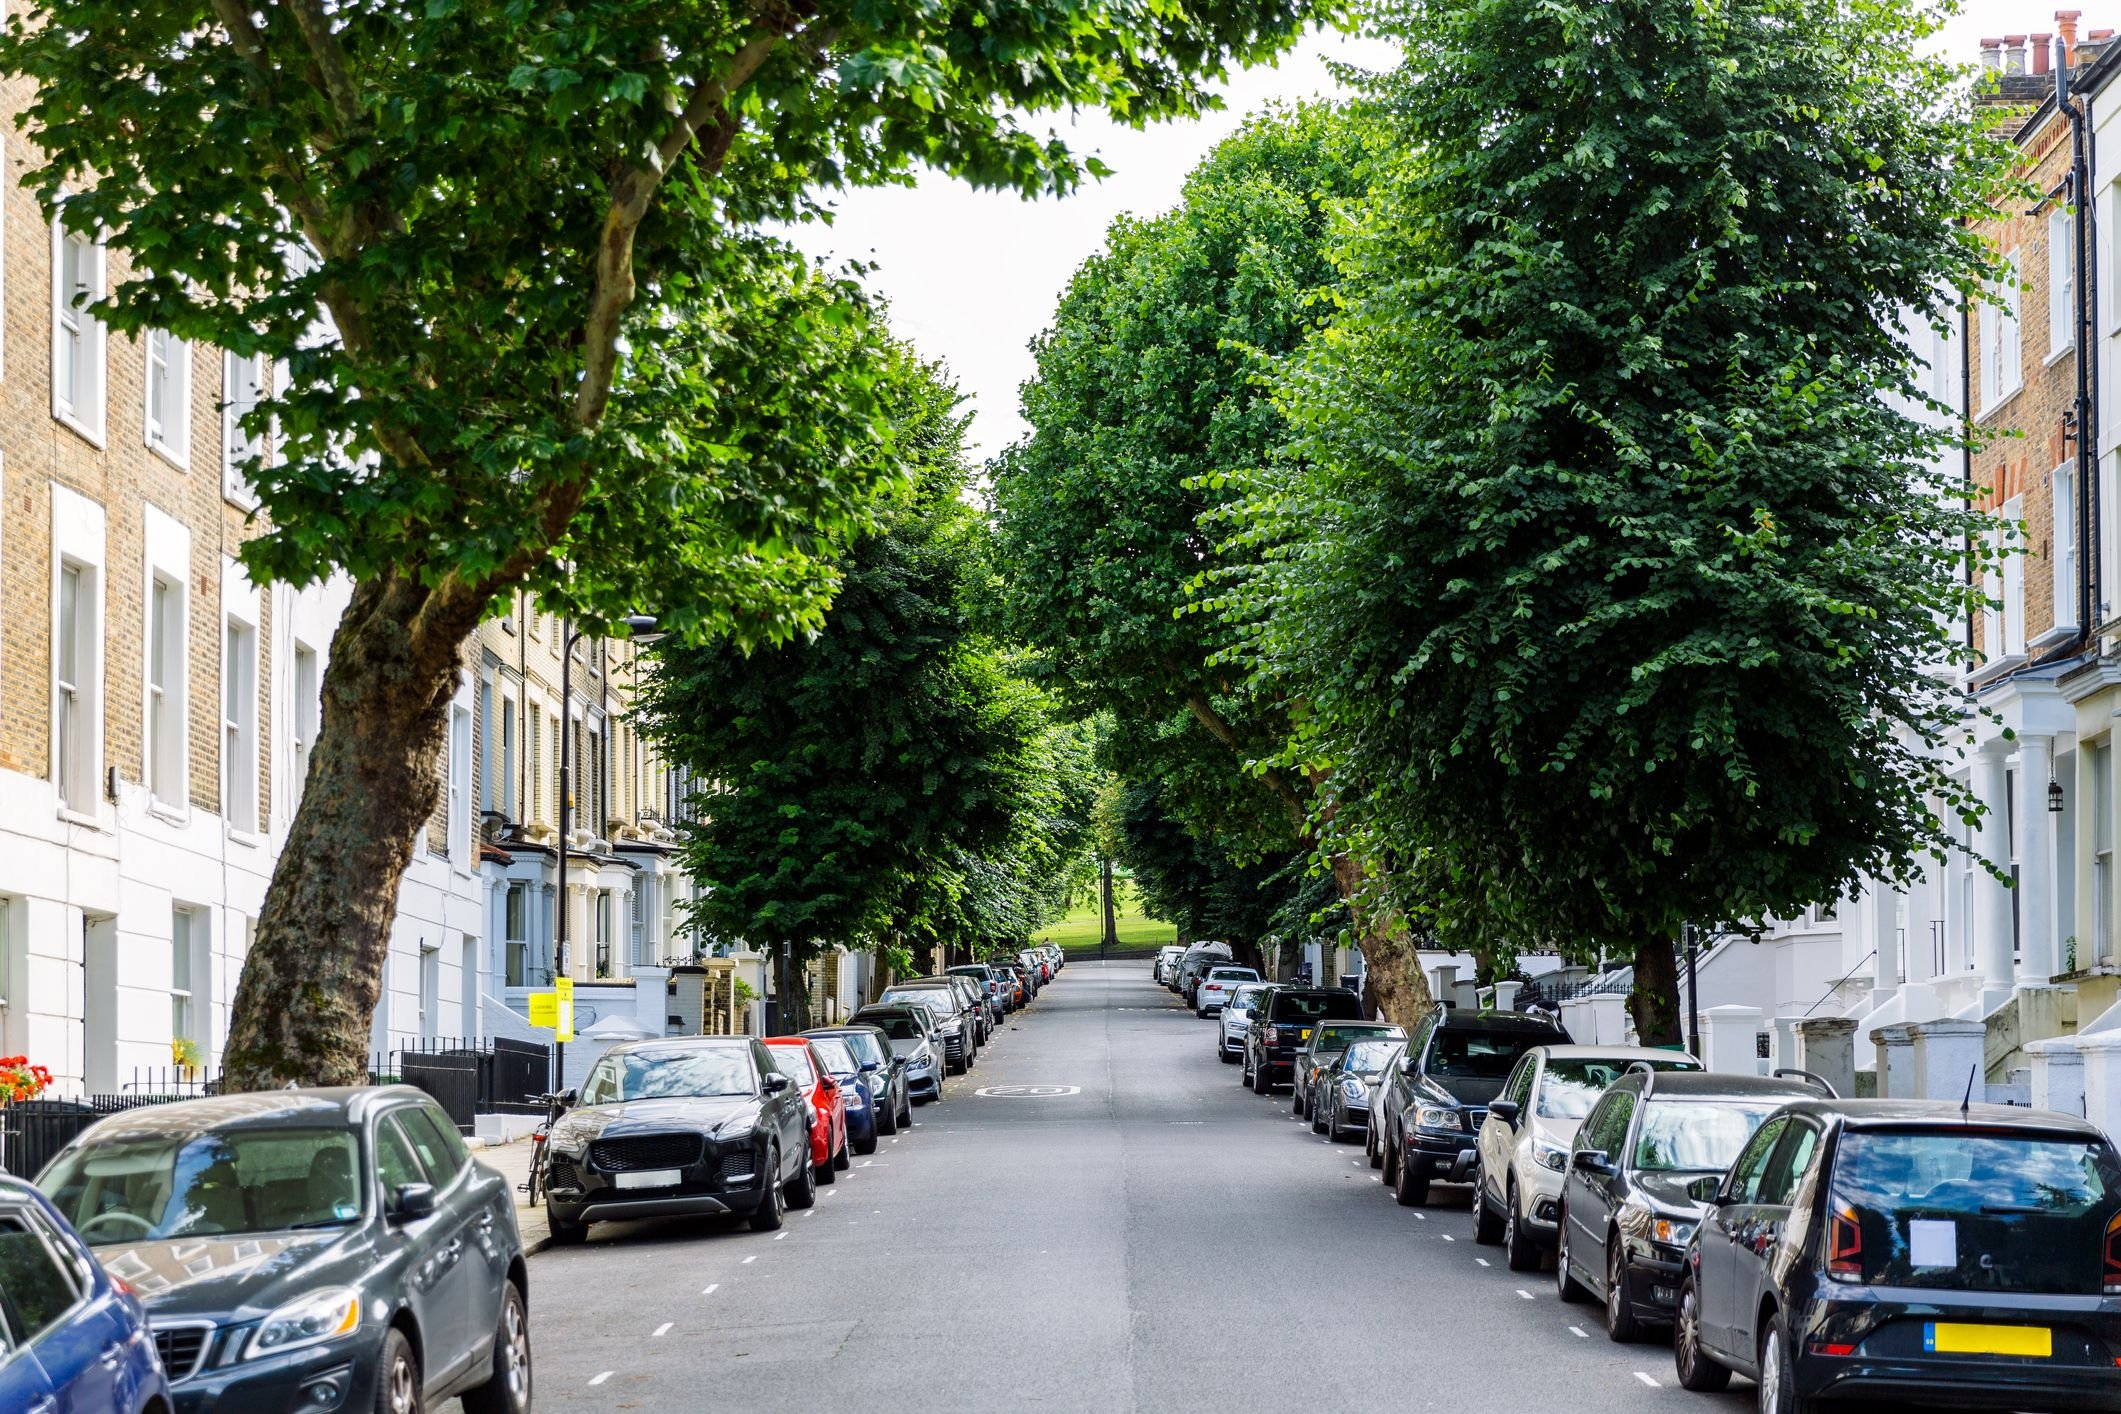 Cars lined outside the street. | Source: Shutterstock